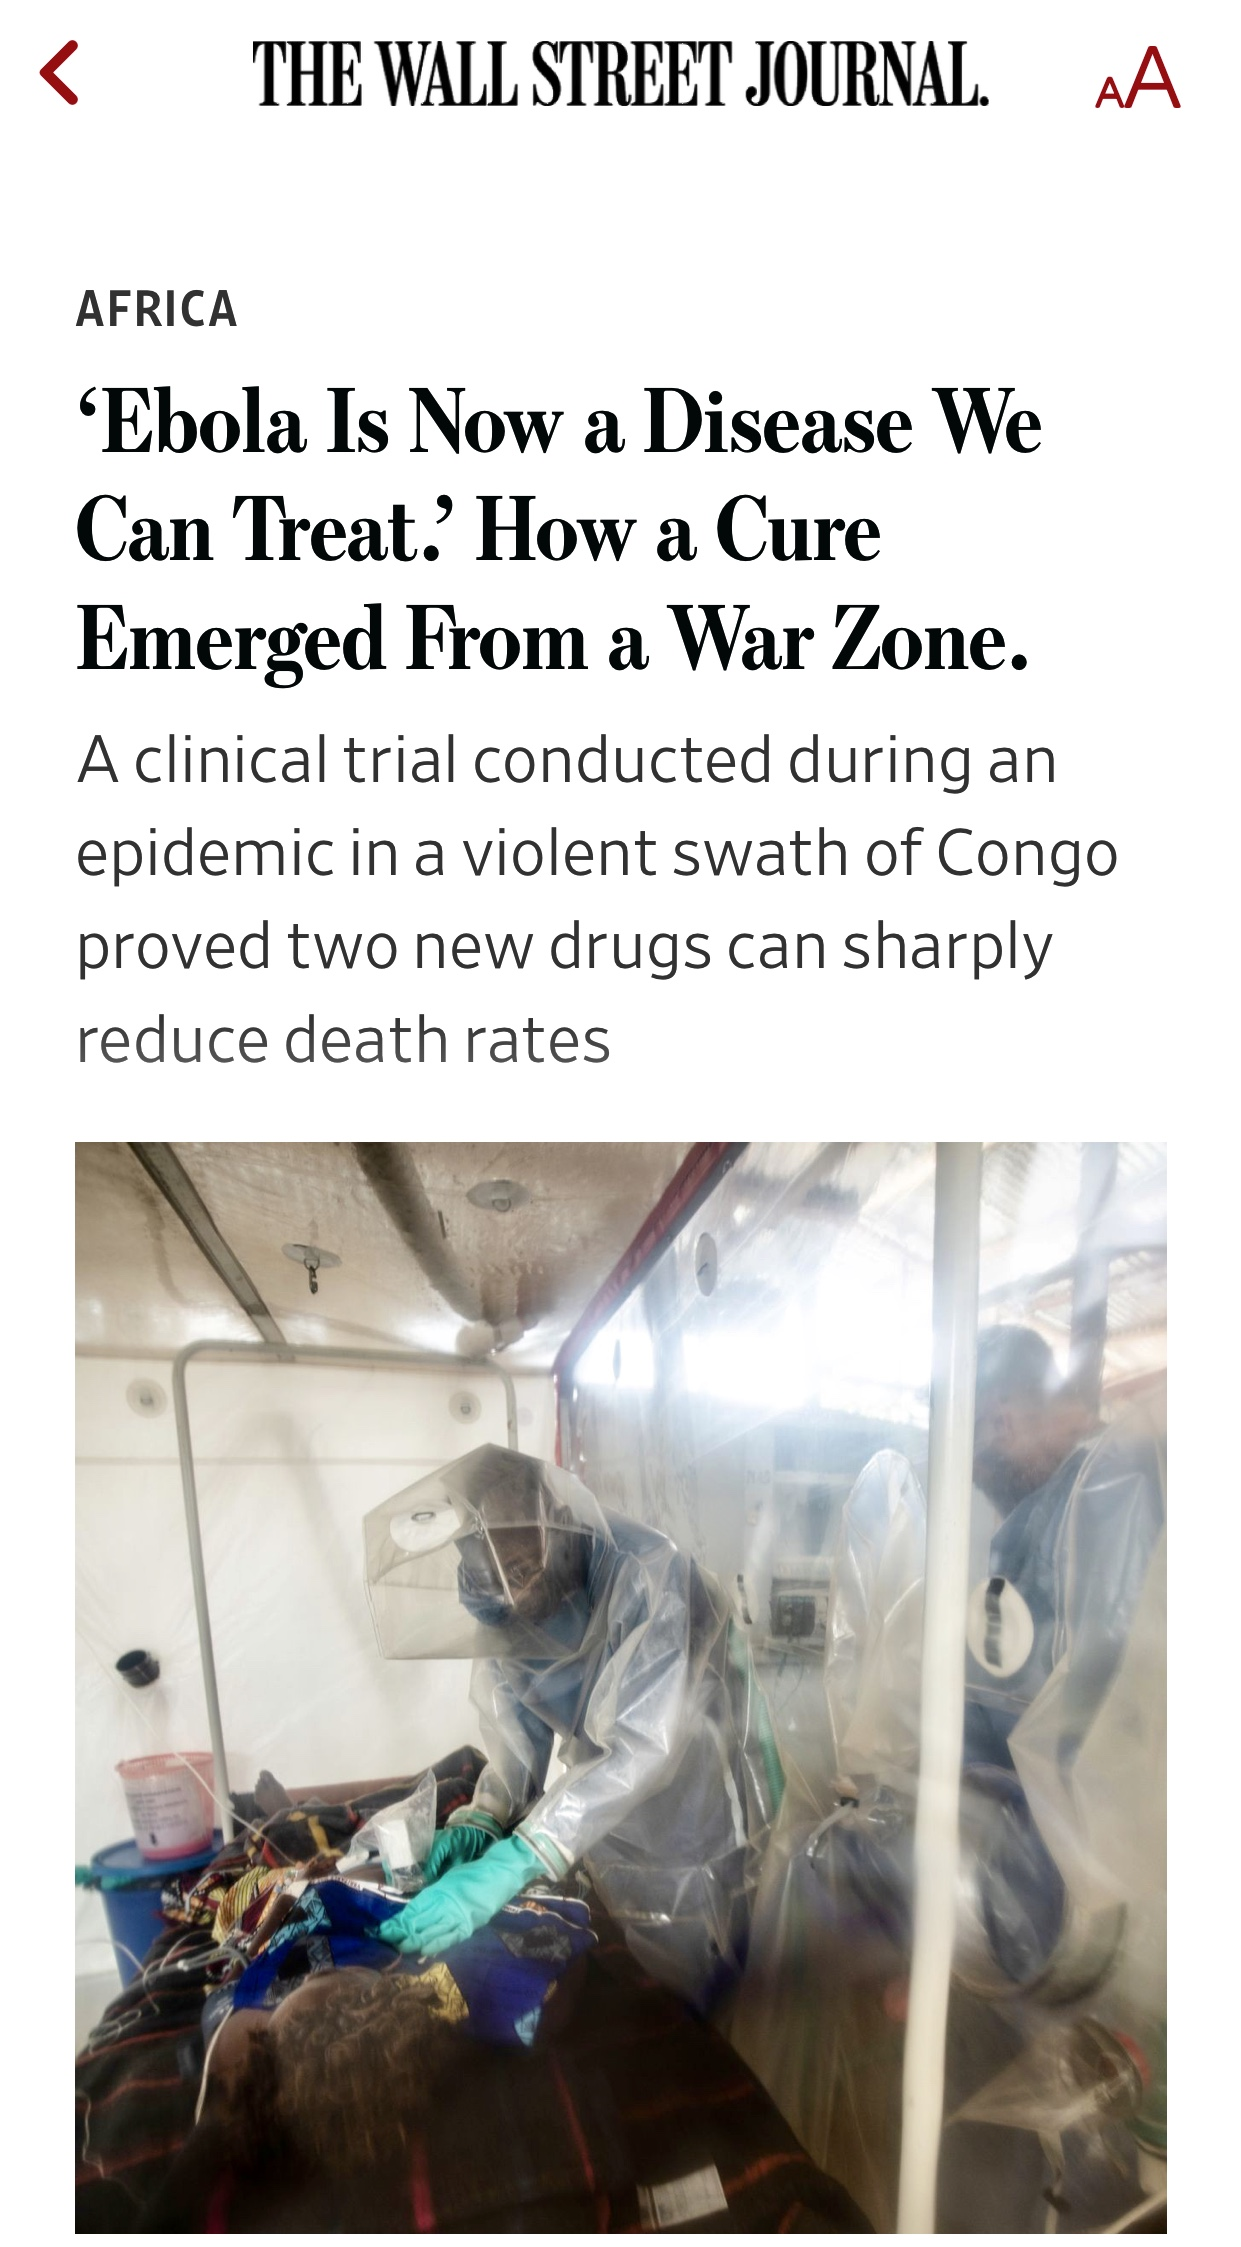 Ebola Is Now A Disease They Can Treat